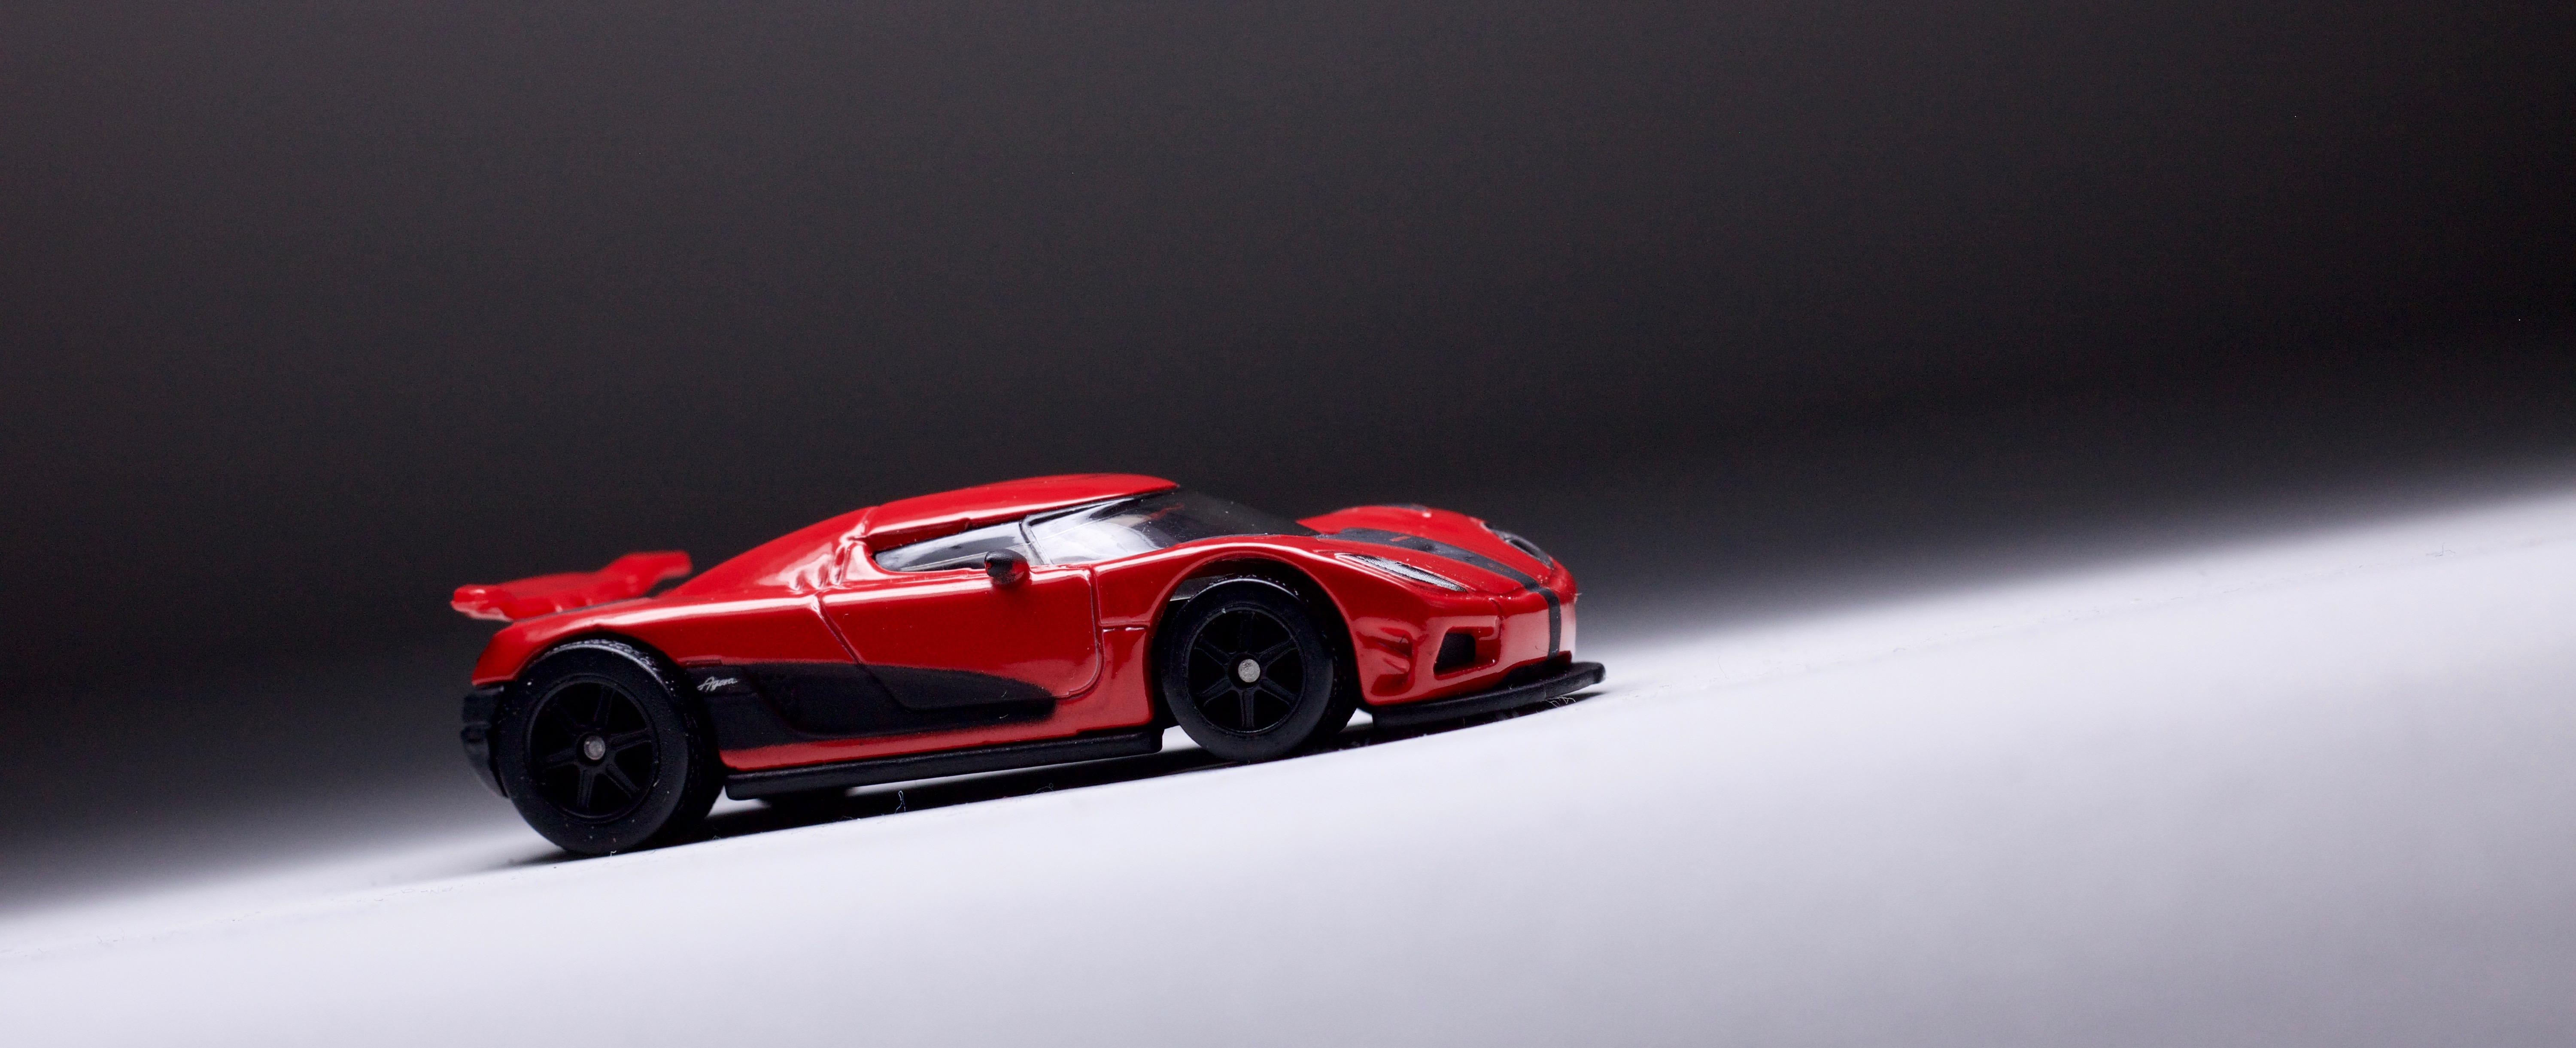 Lamley Daily (One-and-Done Edition): Hot Wheels Koenigsegg ...